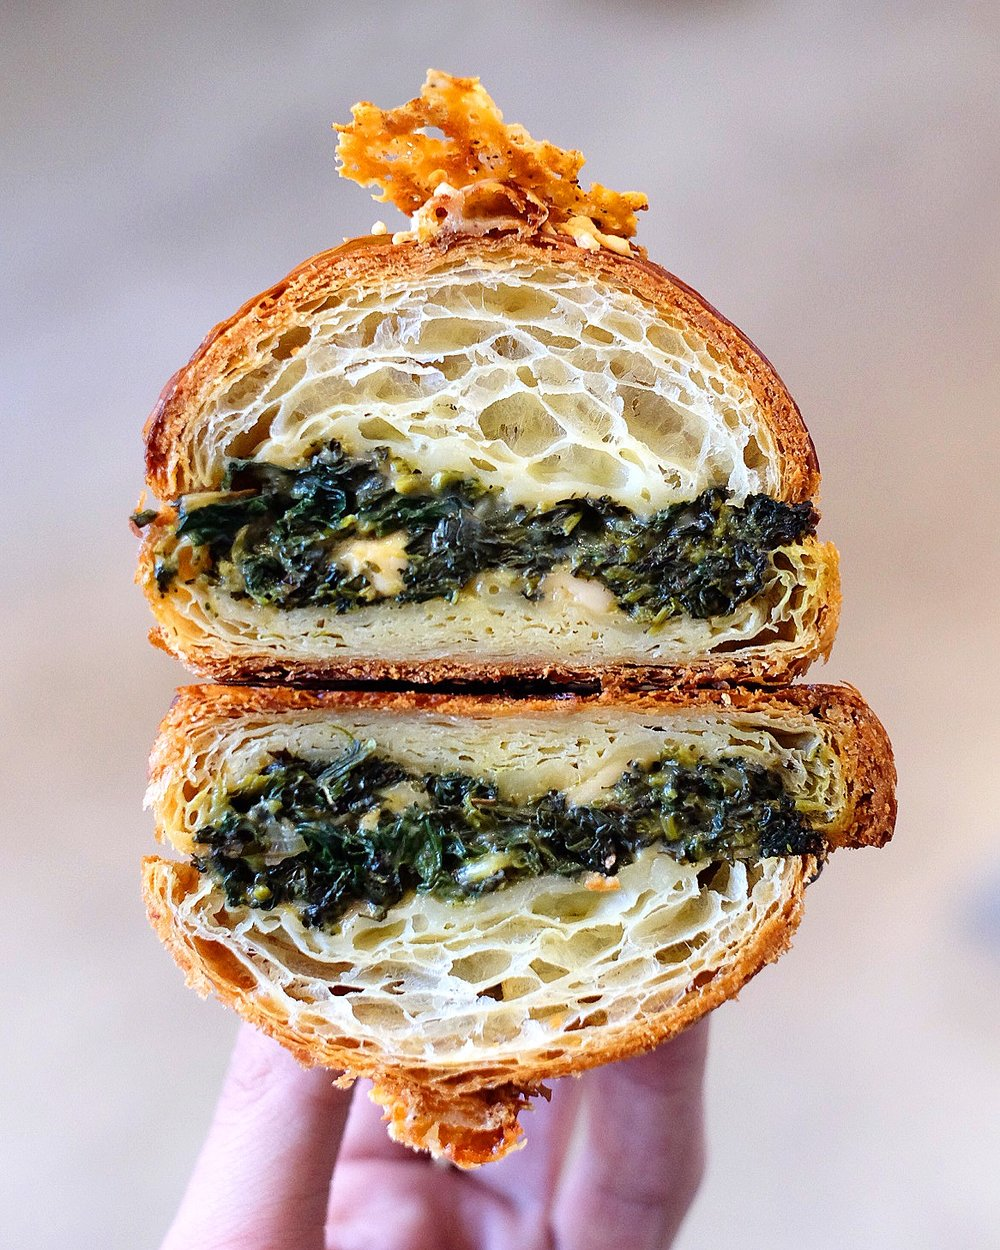 SPINACH PIE TWICE BAKED CROISSANT $8 - spinach, OLIVE OIL BAKED broccoli rabe, SAUTEED onion, chilli, béchamel, cheddar cheese.